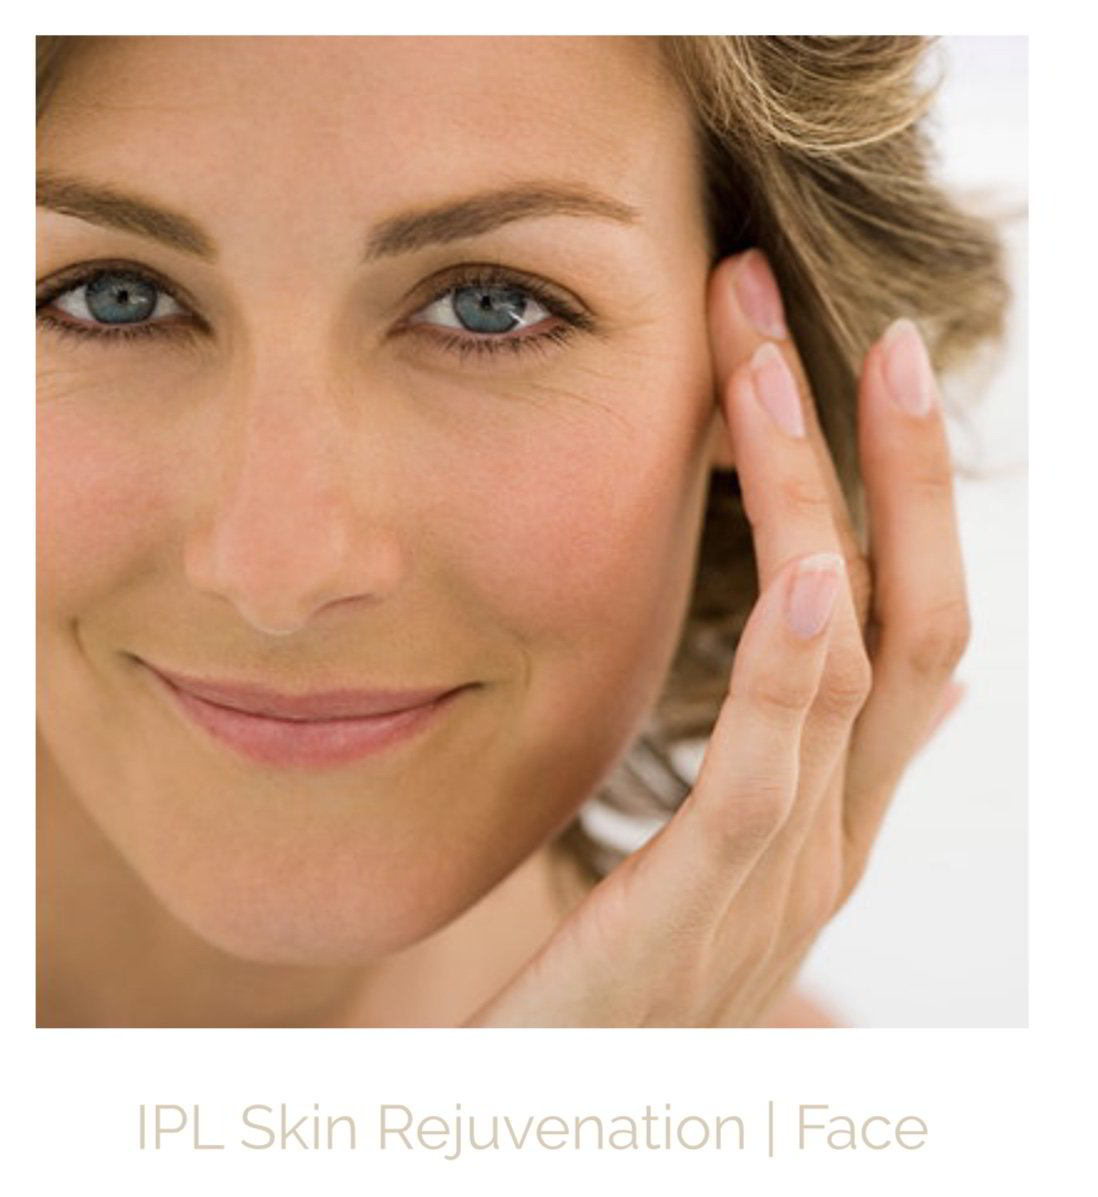 IPL Facial Rejuvenation